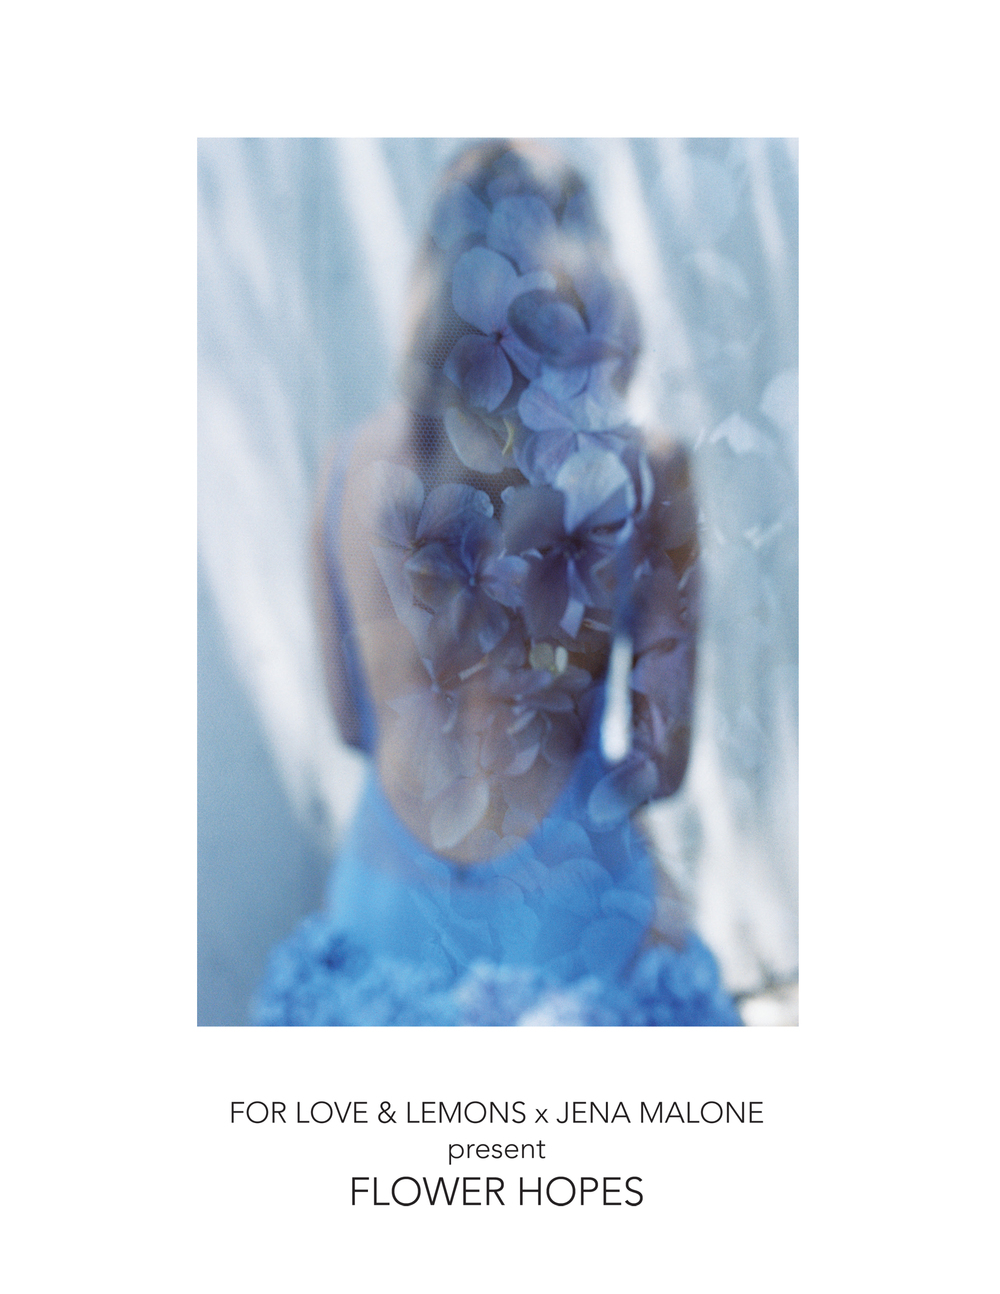 for-love-and-lemons-jena-malone-skivvies